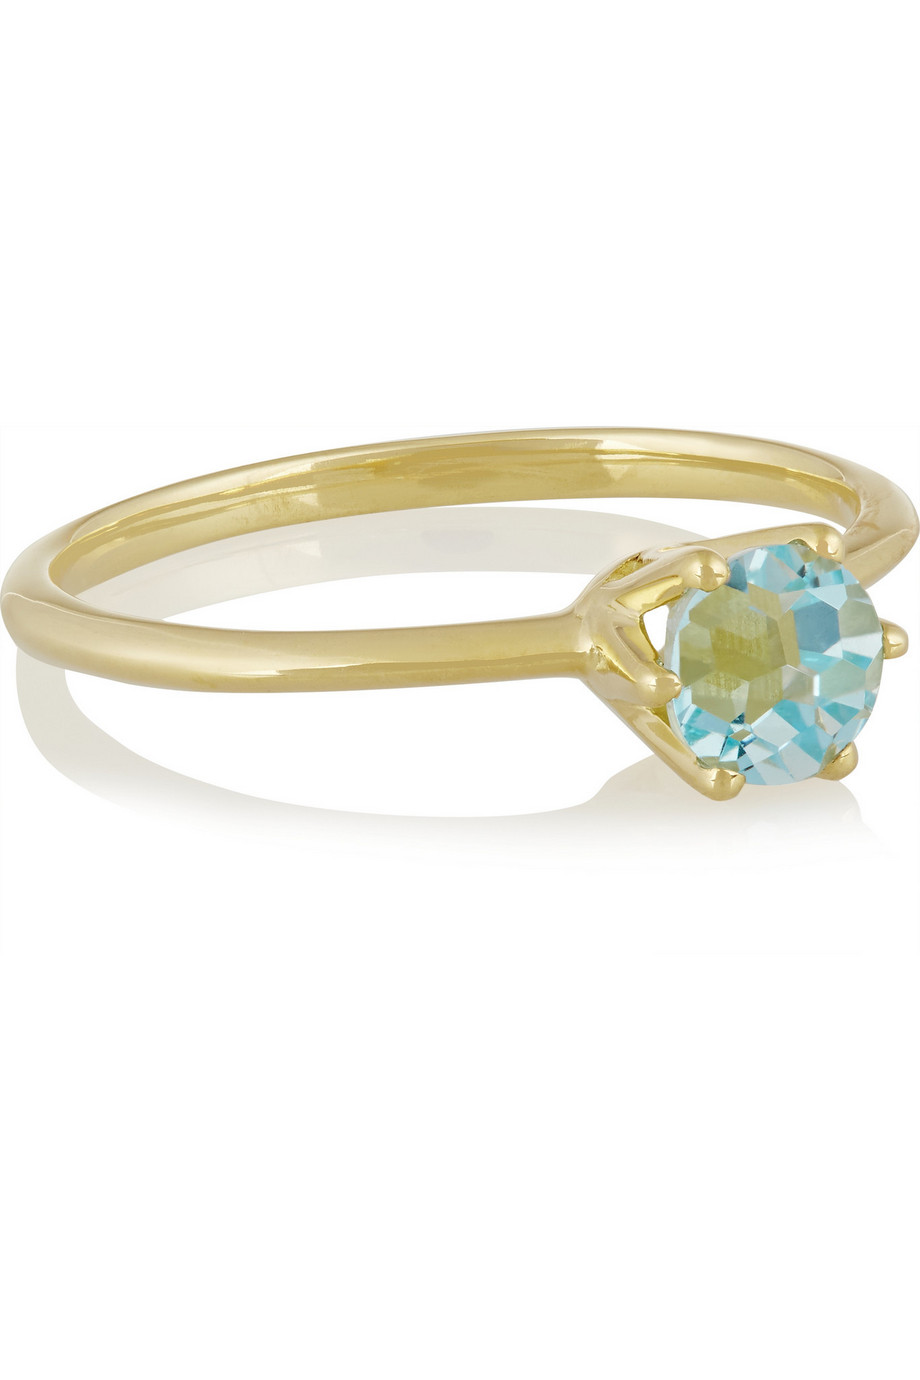 Ippolita Rock Candy 18-Karat Gold Topaz Ring, Light Blue/Gold, Women's, Size: 6